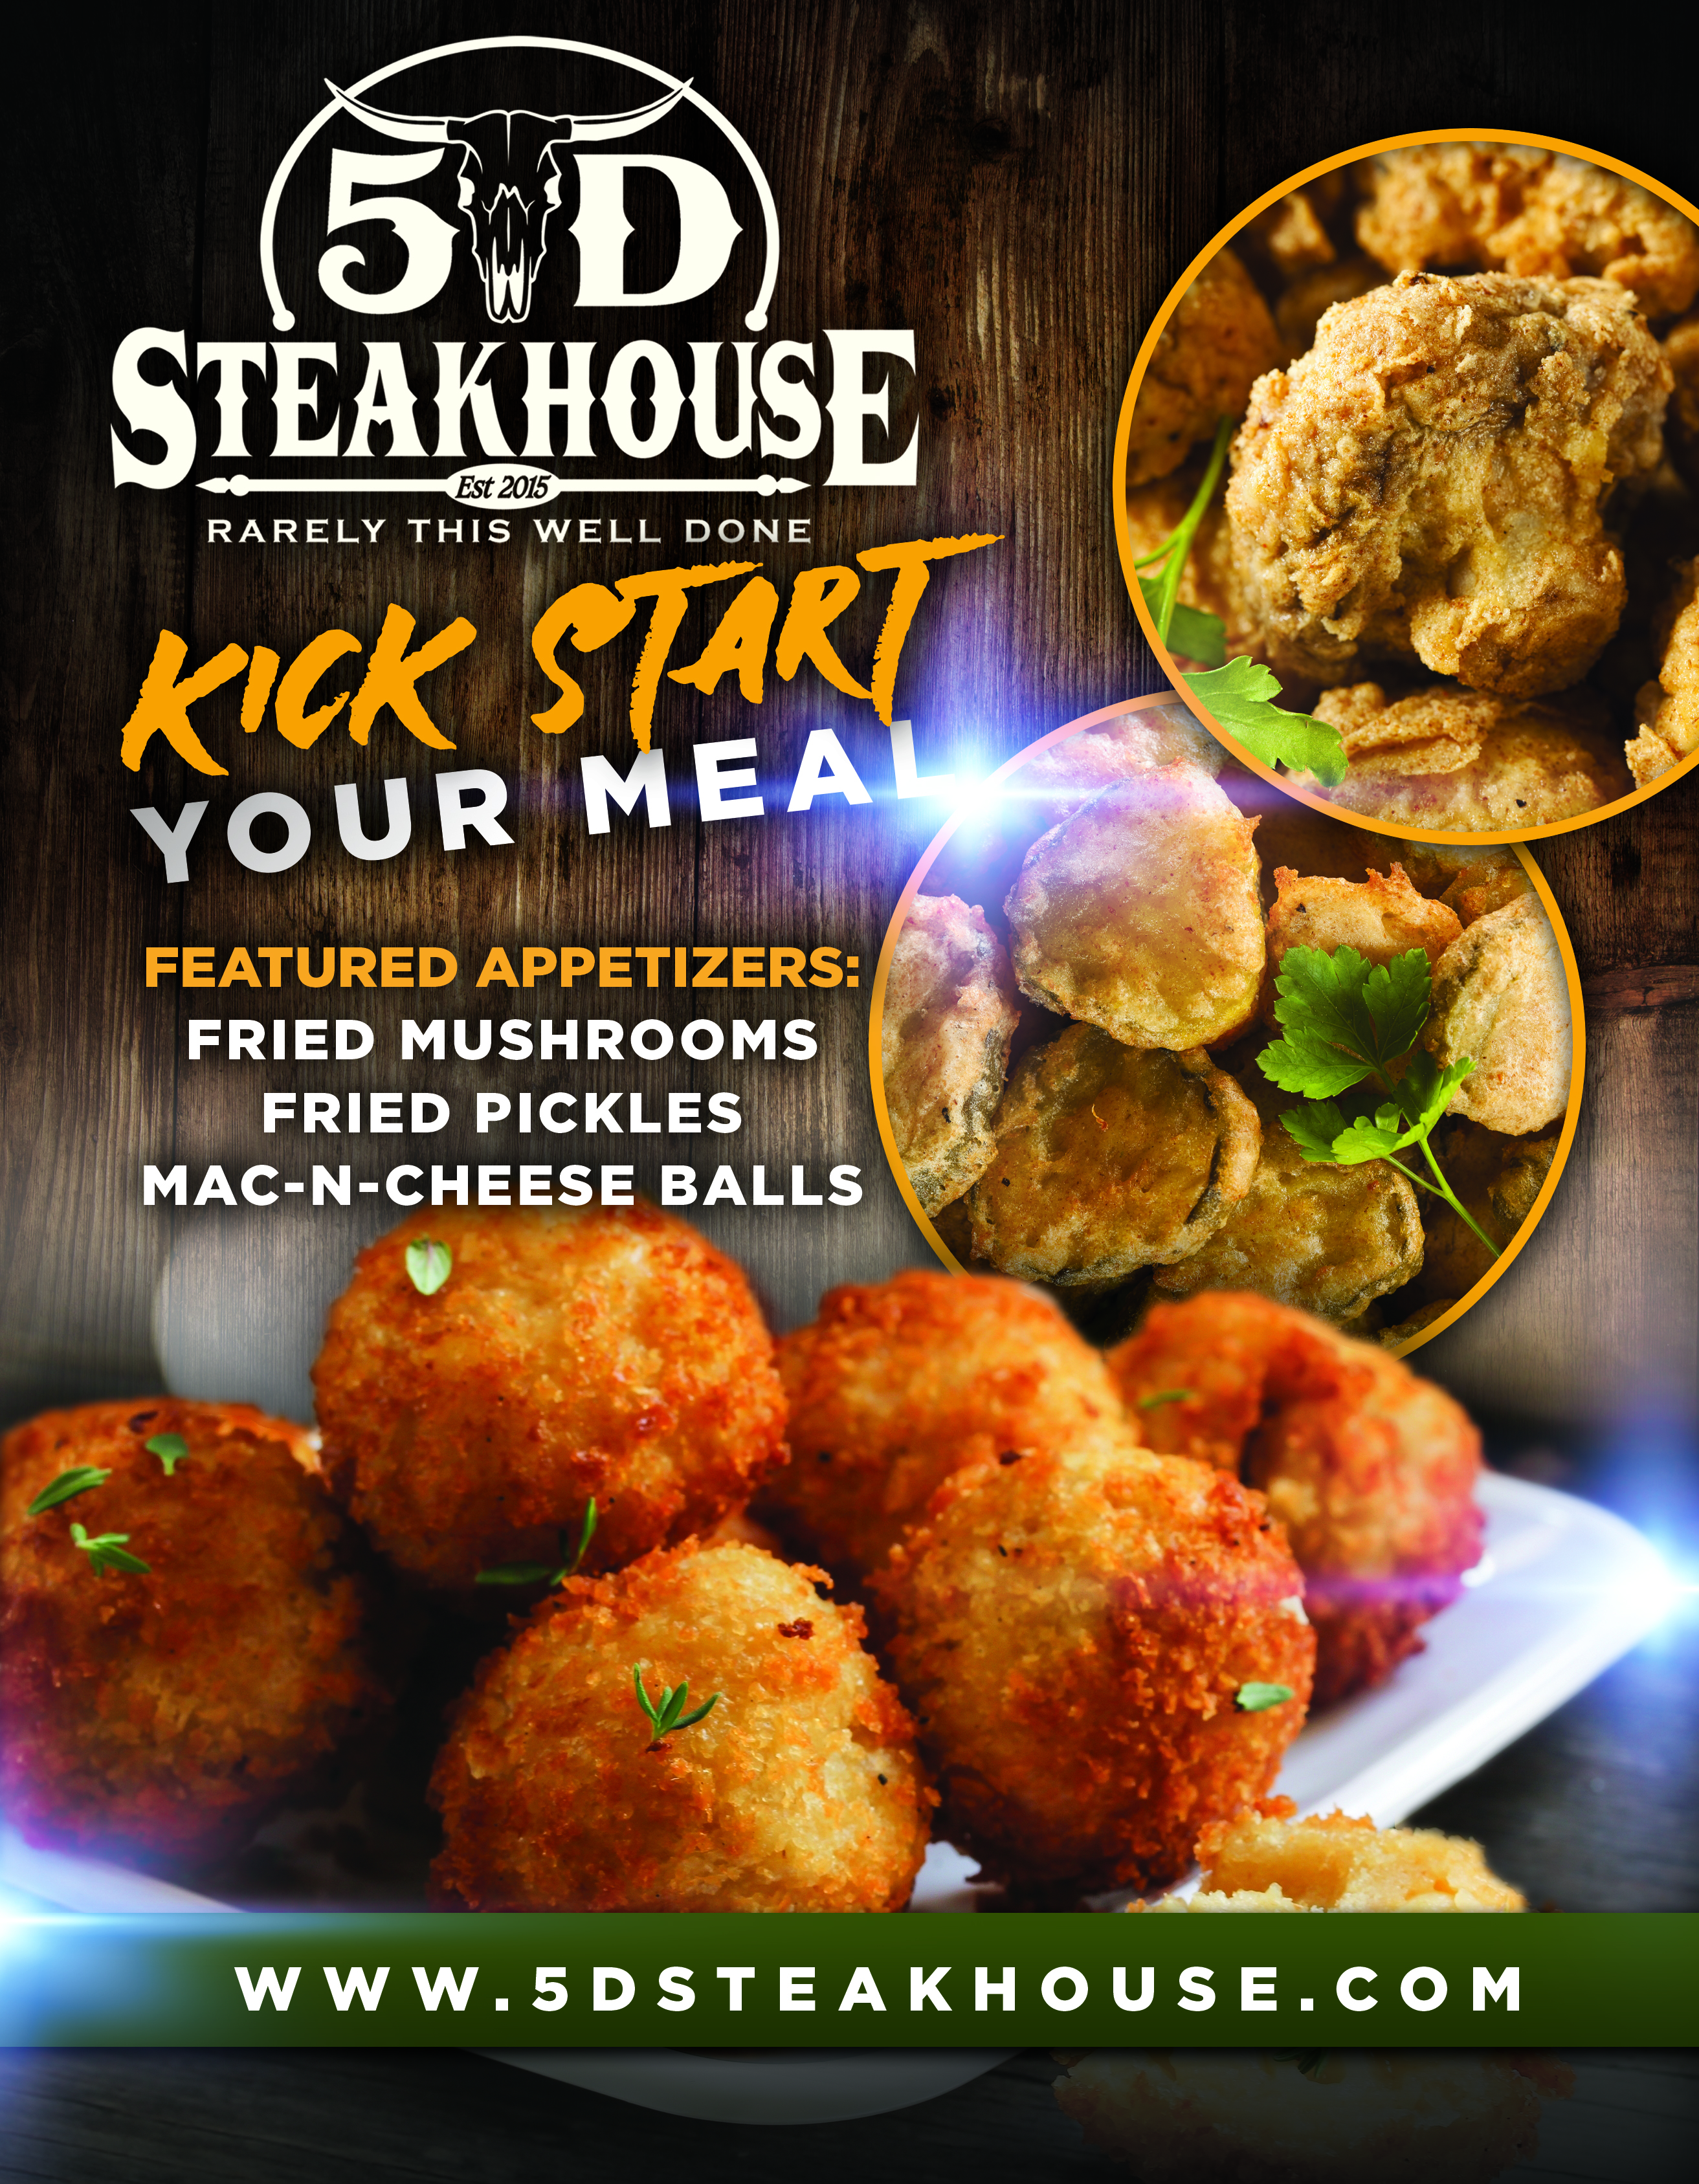 Kick start your meal! Featured Appetizers: Fried msuhrooms, Fried pickles, Mac-n-cheese balls